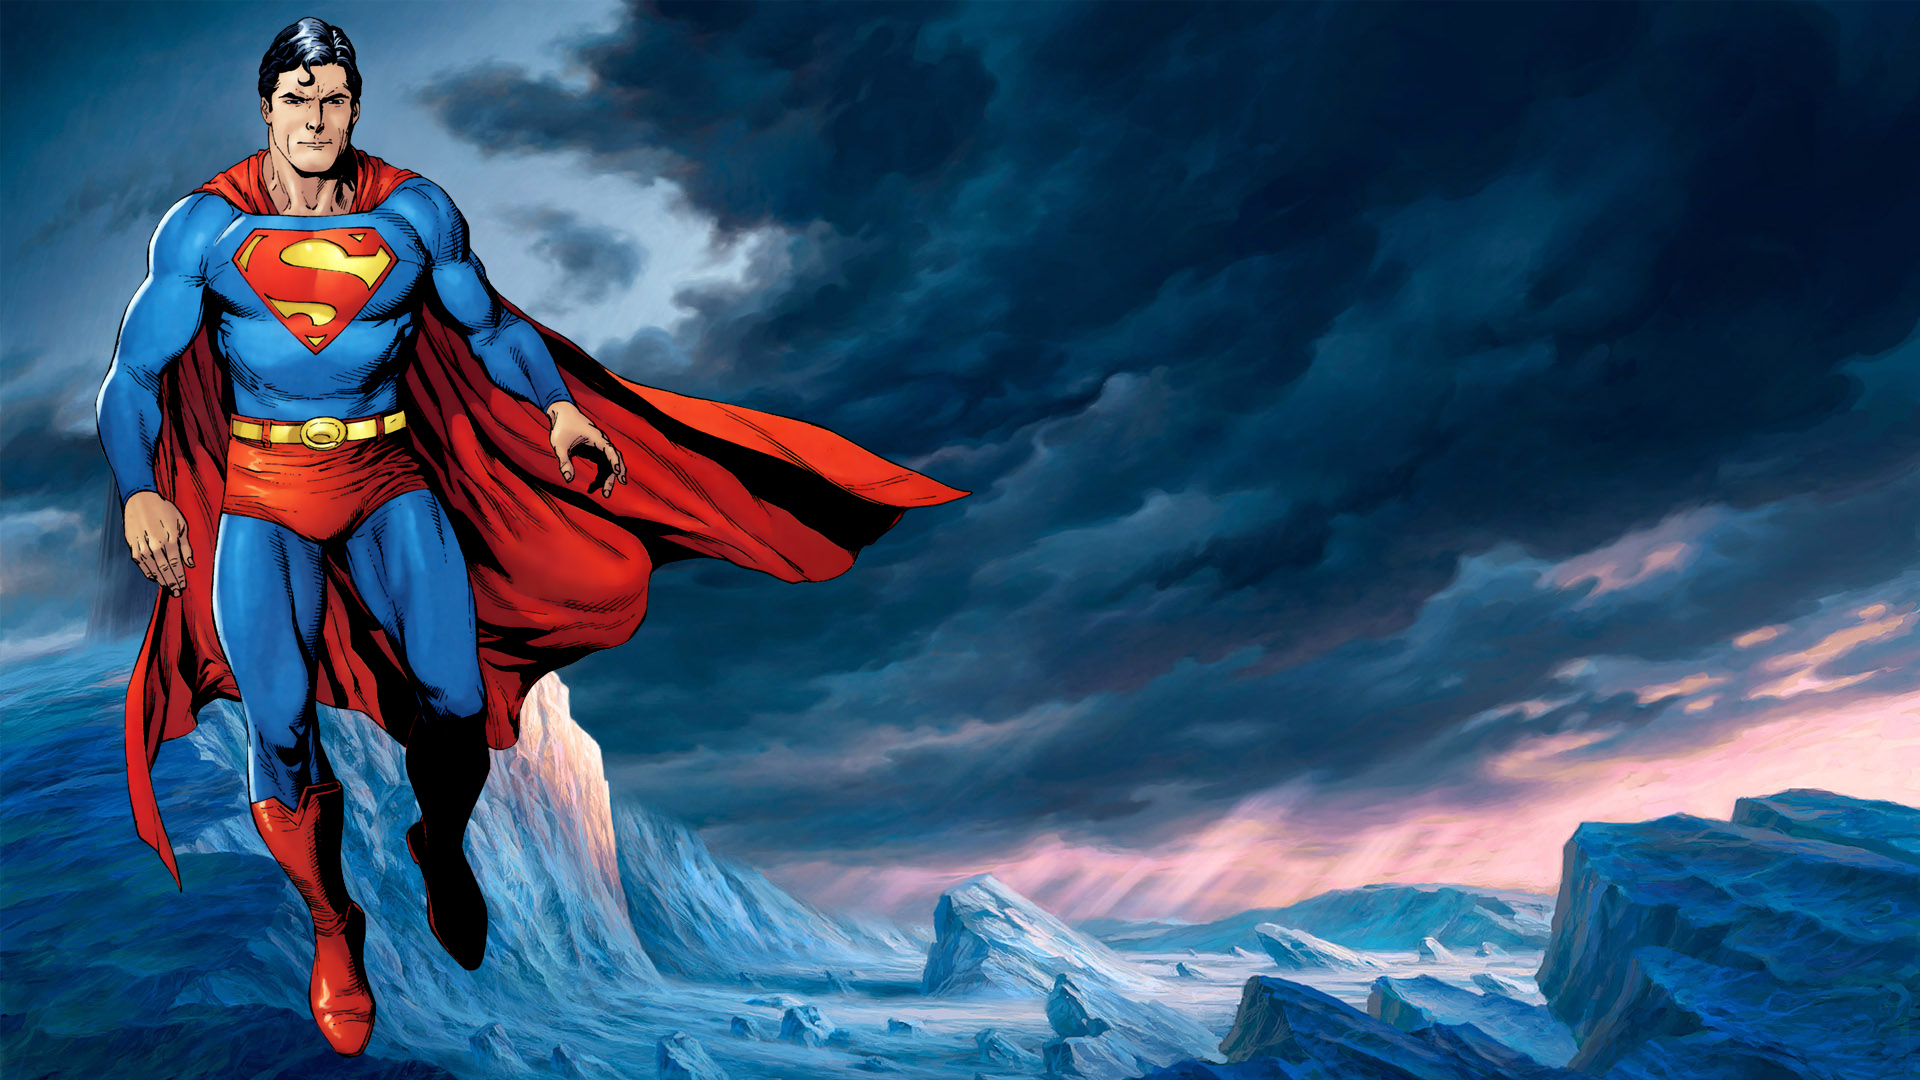 superman comic art wallpaper - photo #44